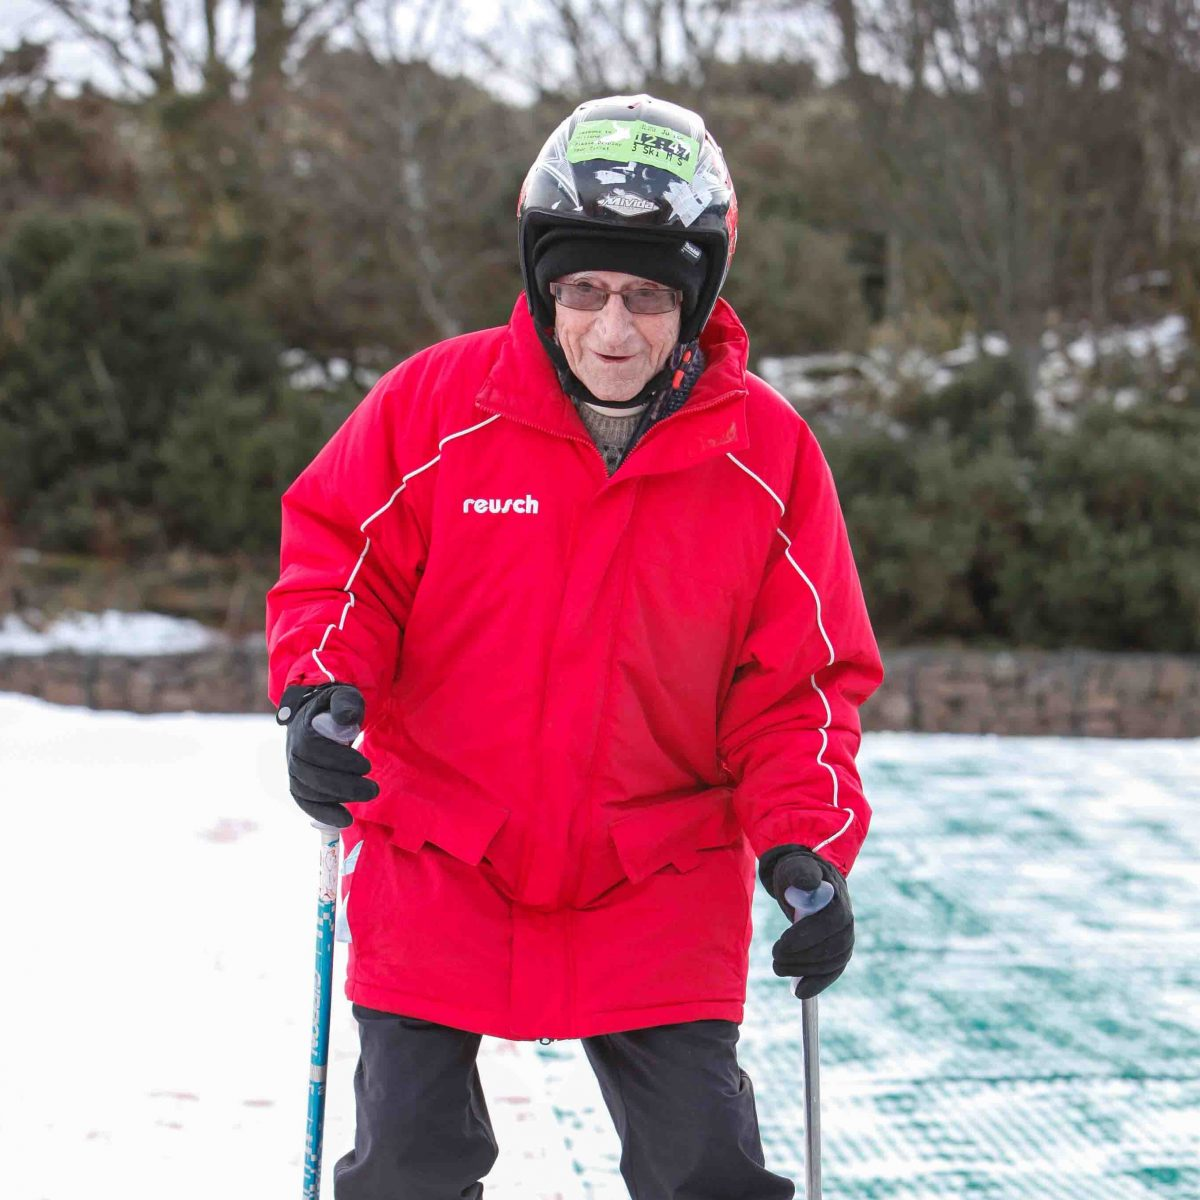 Blind WW2 Veteran Takes To The Slopes For The First Time